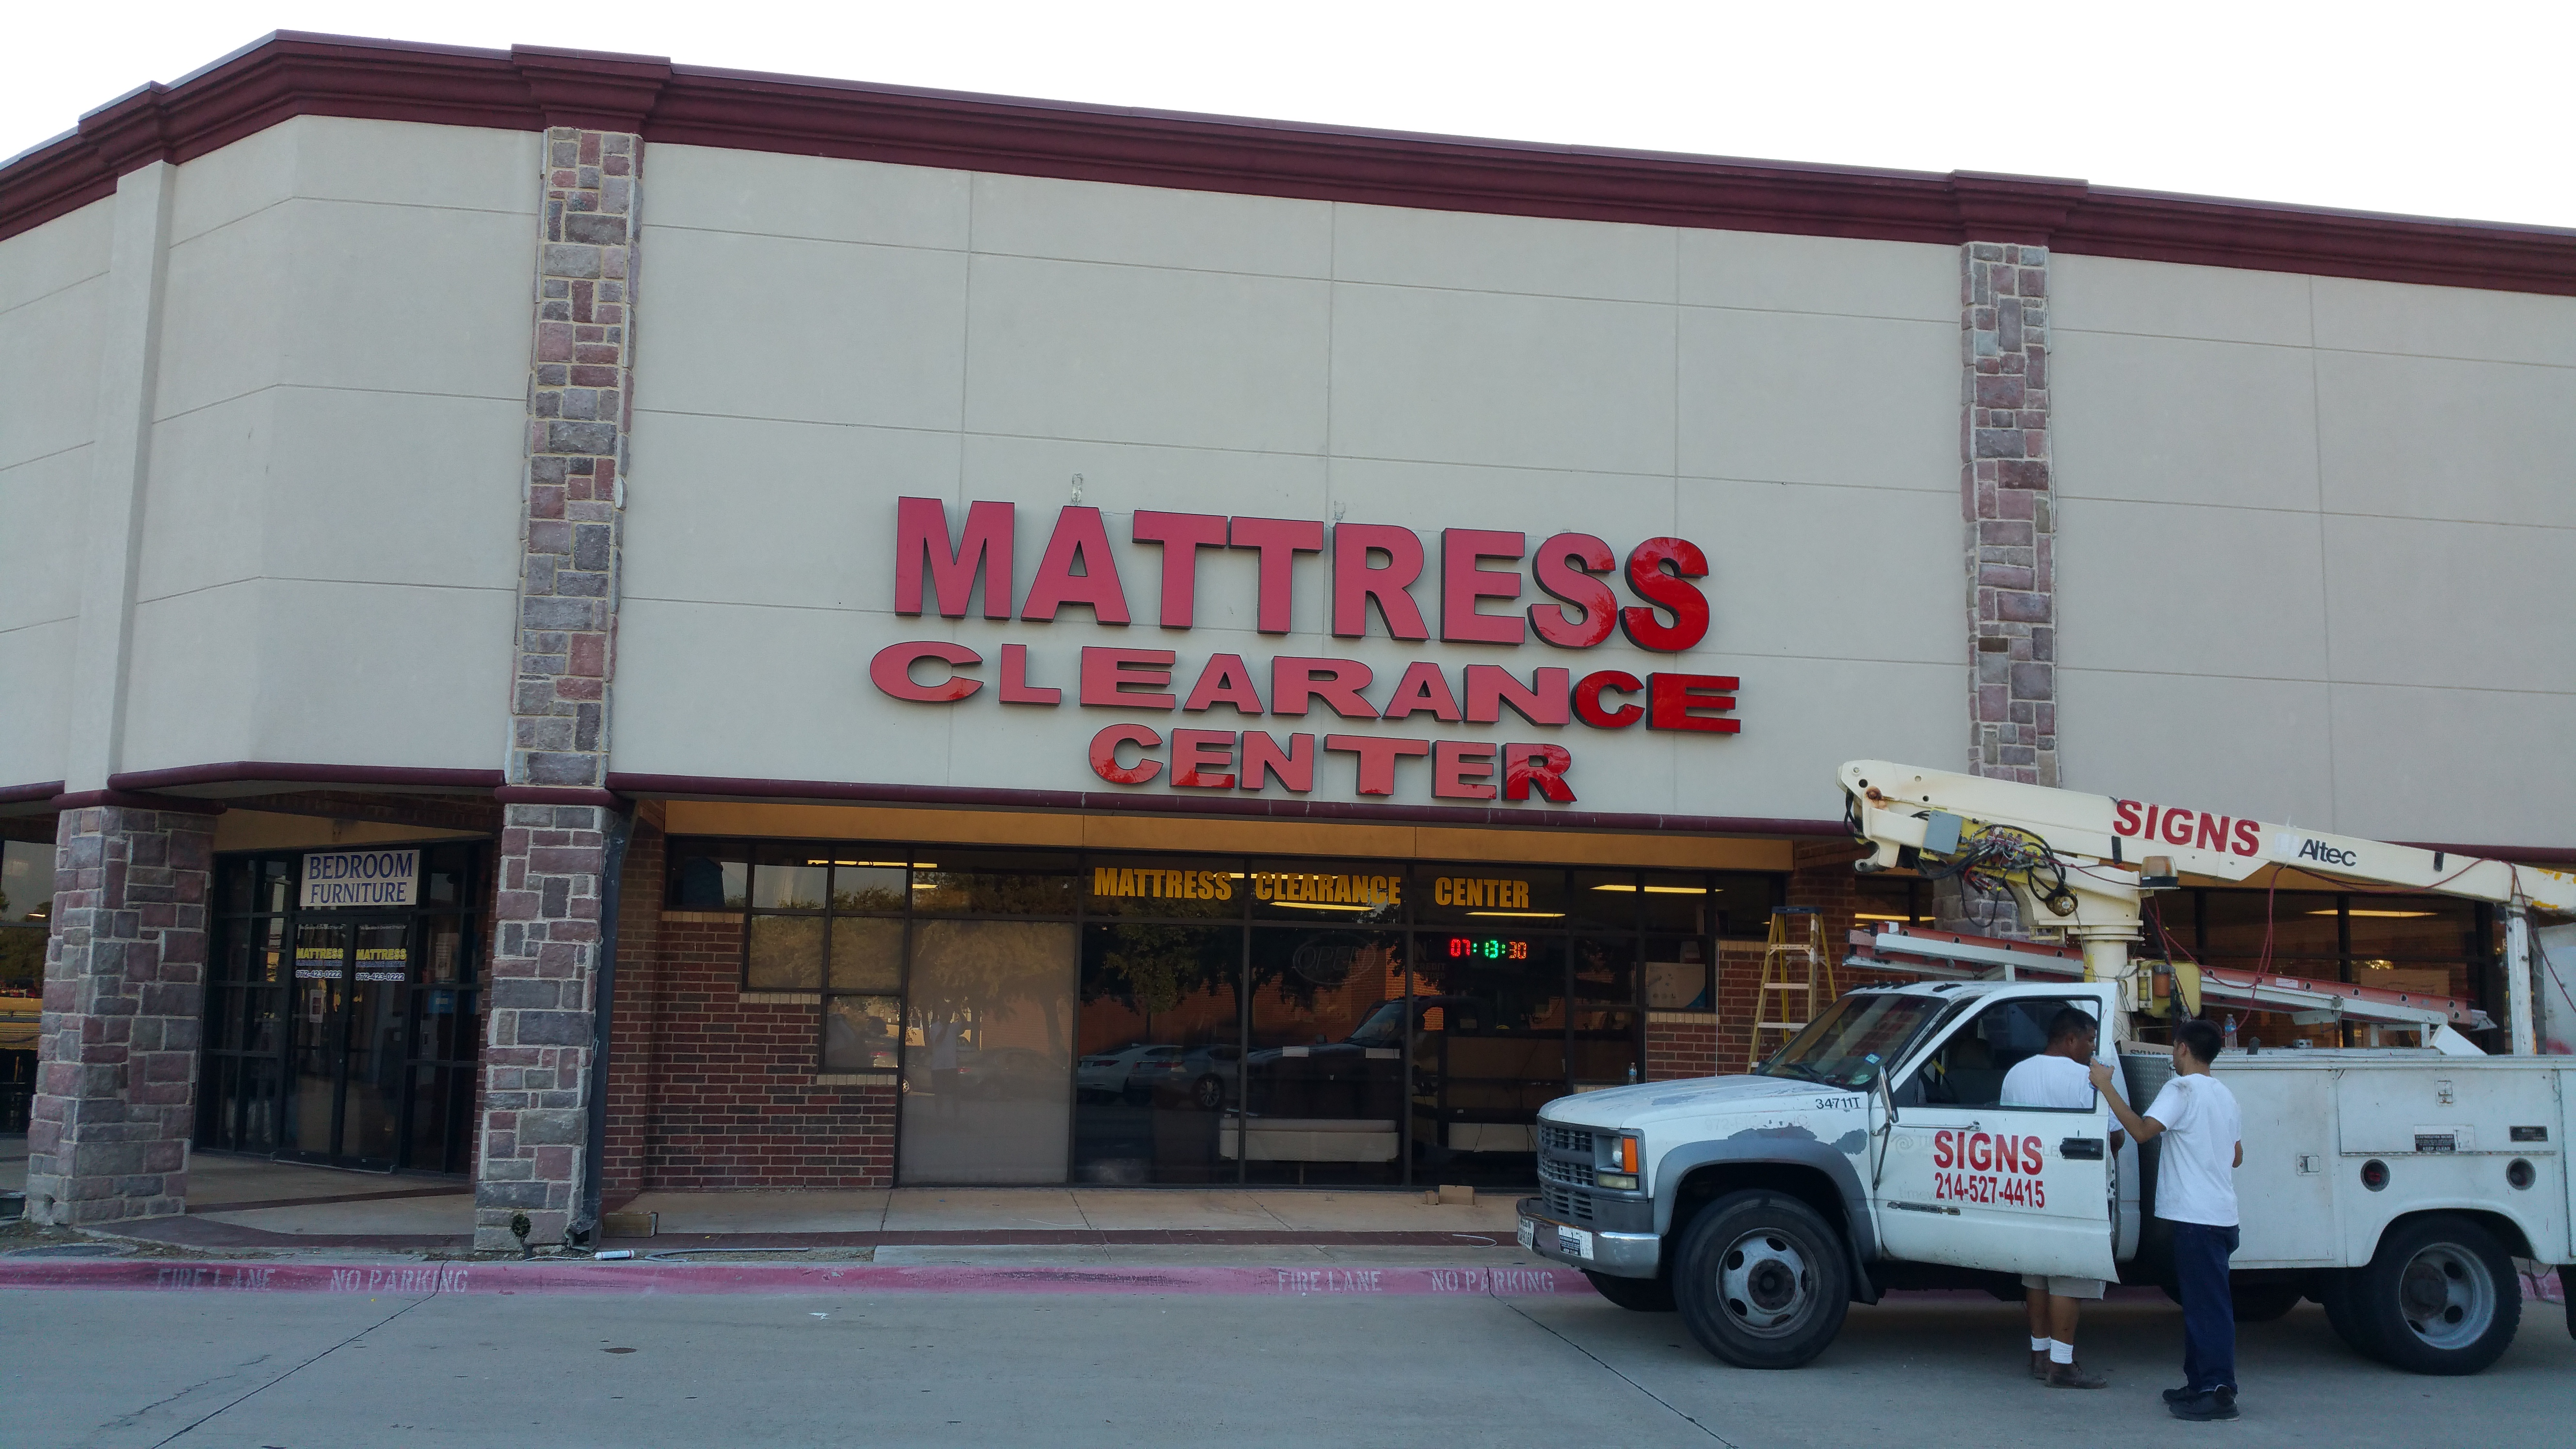 Mattress Clearance center image 0